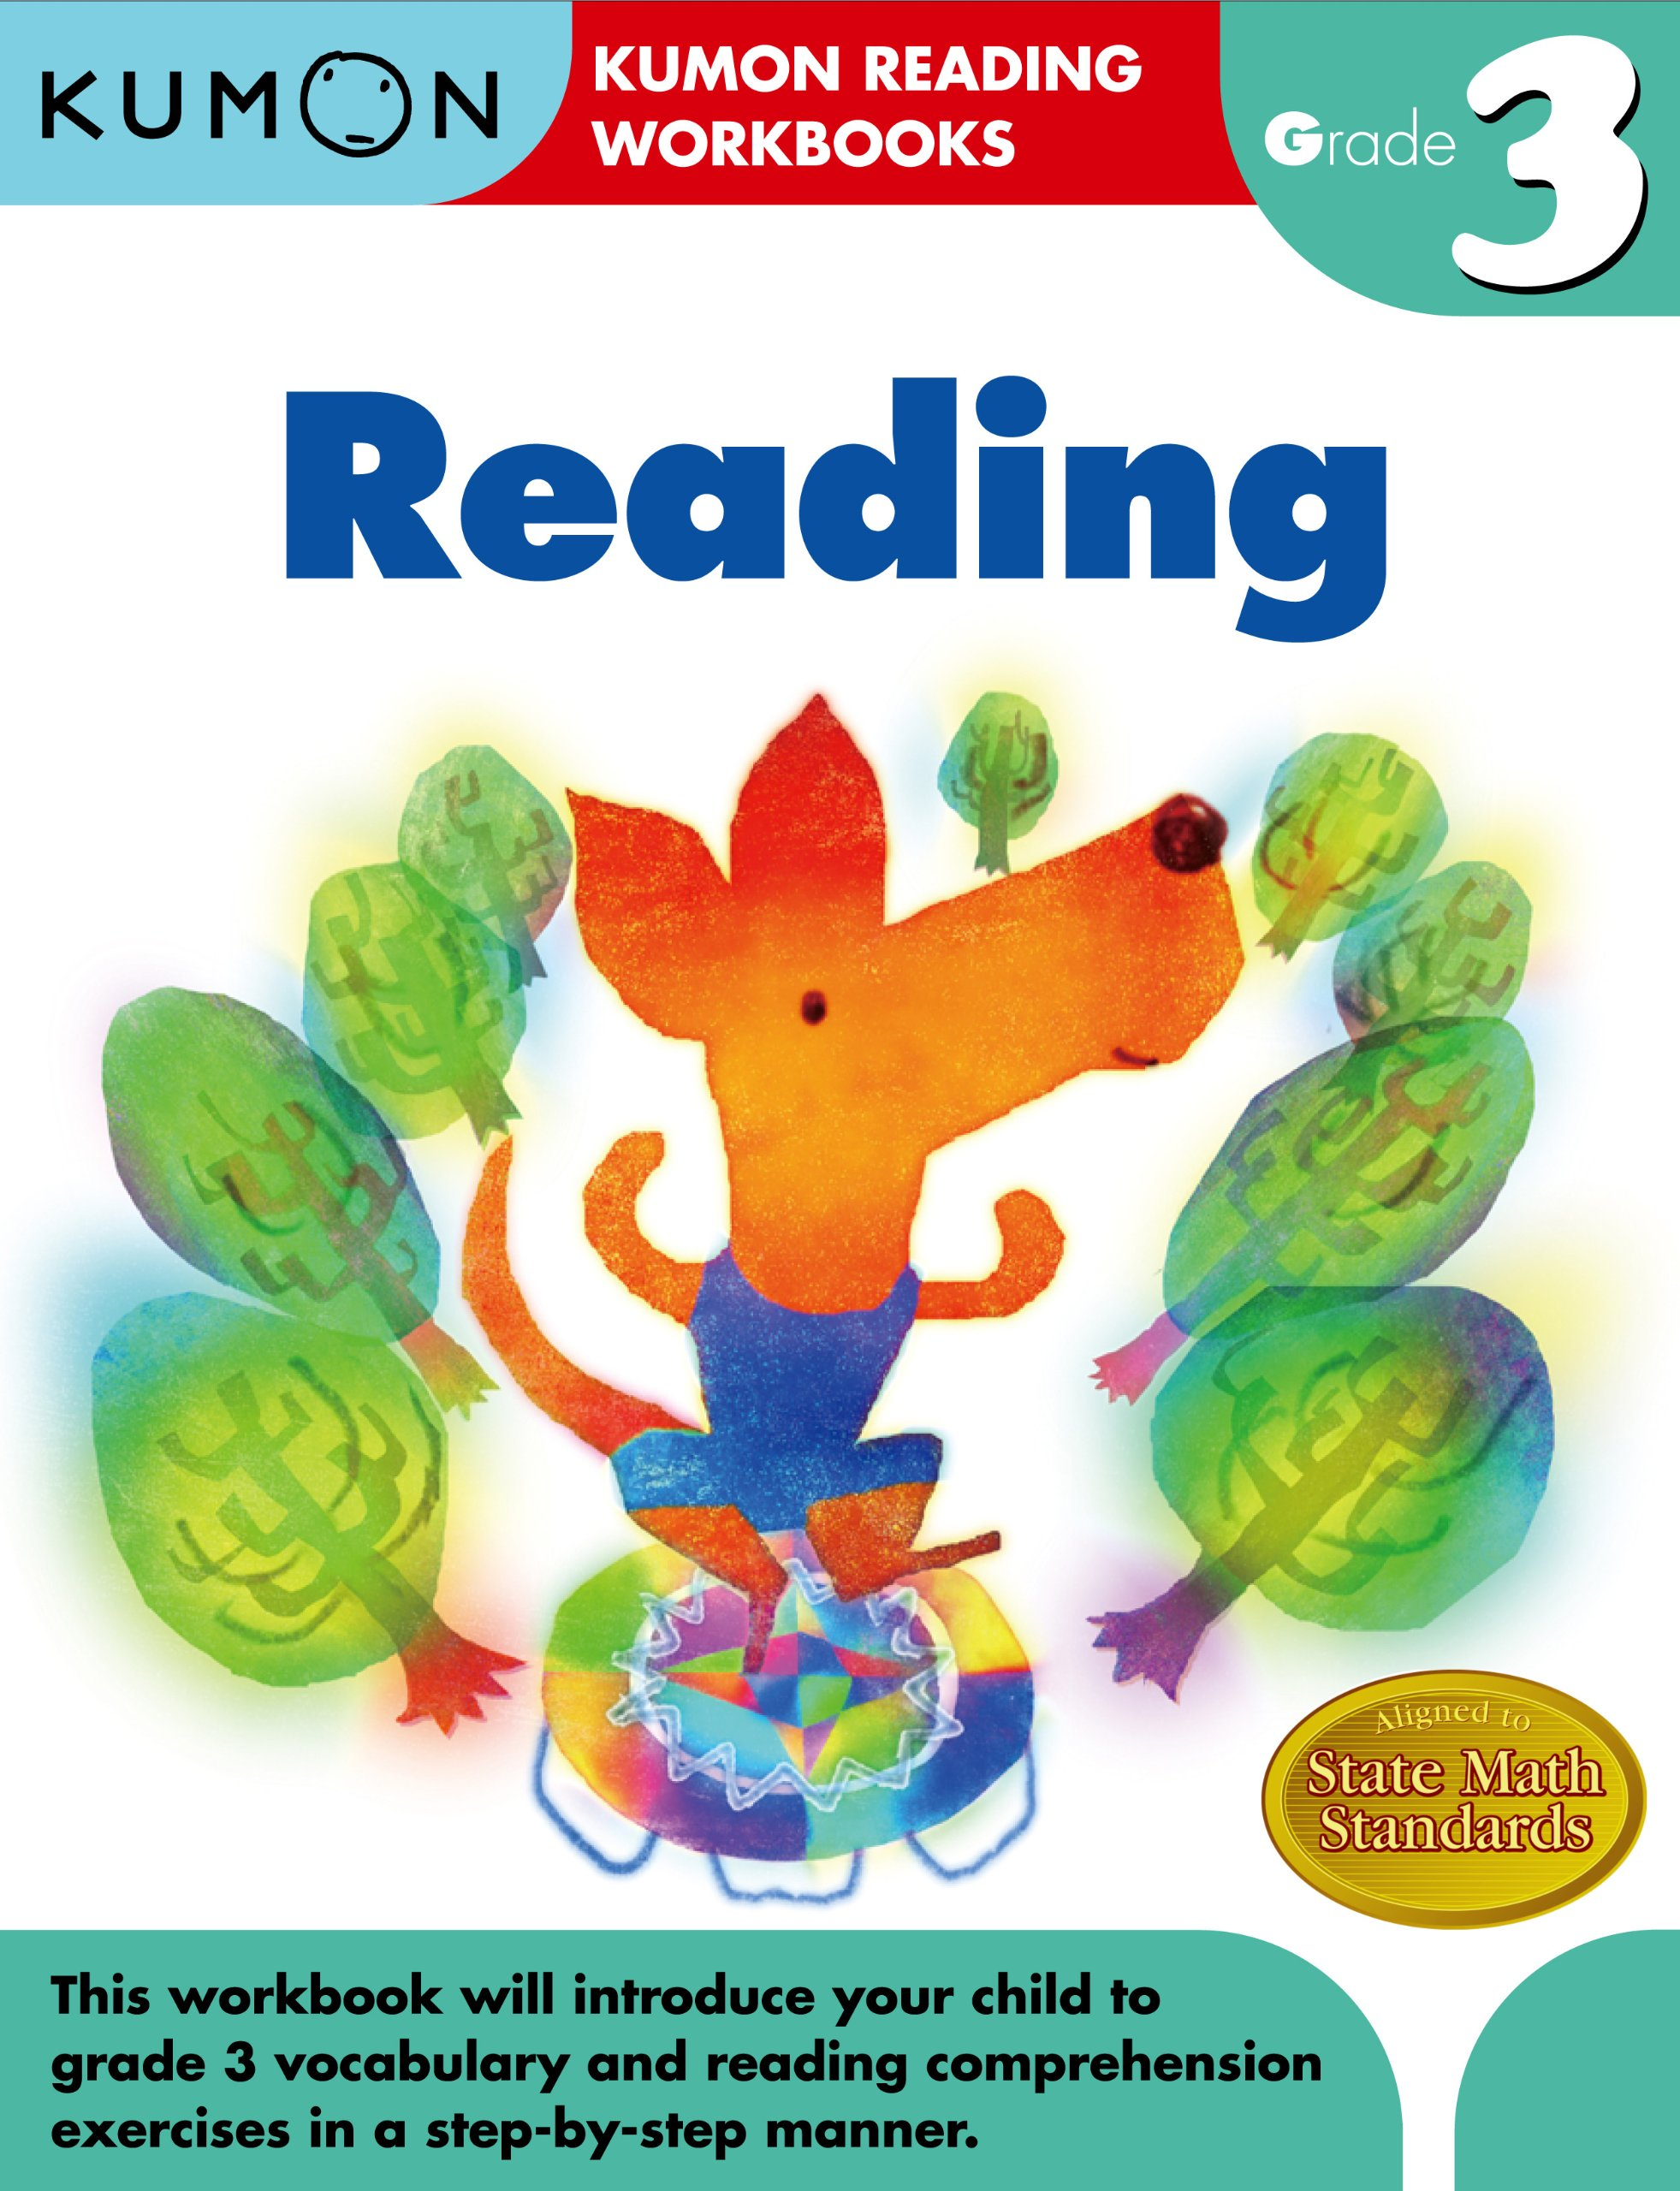 Amazon.com: Grade 3 Reading (Kumon Reading Workbooks) (9781934968772 ...